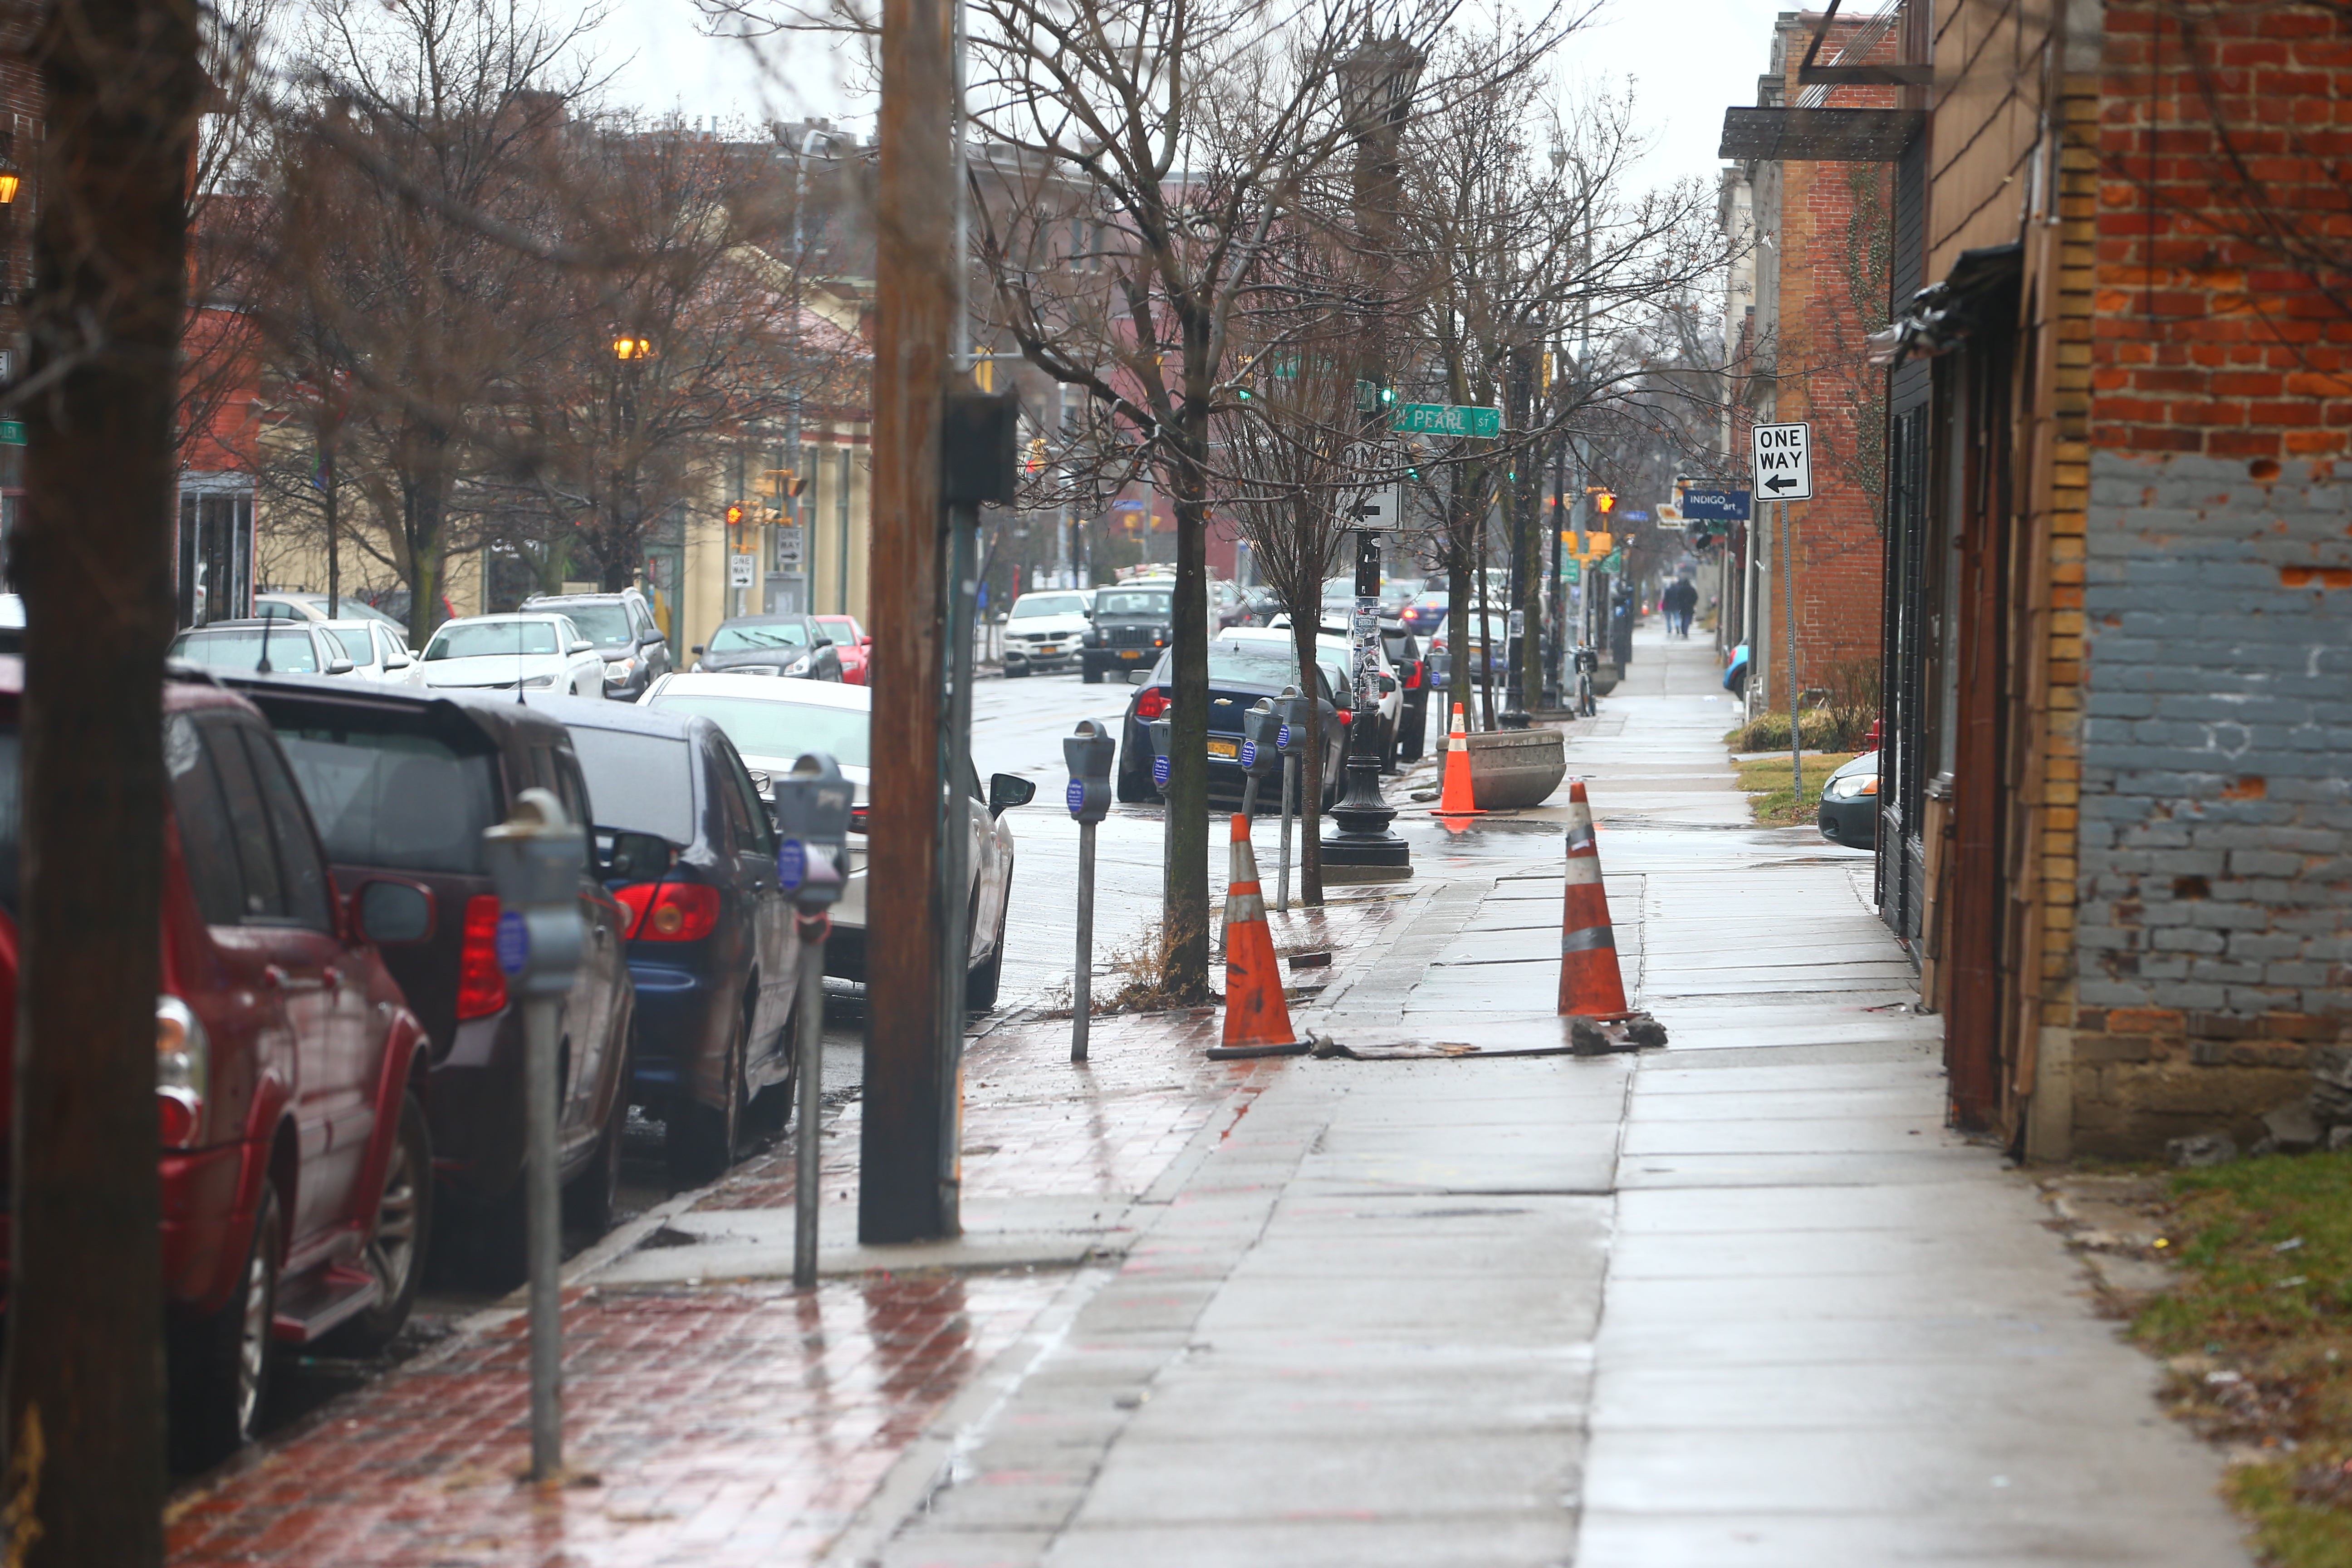 Allen Street is in line for a $7.5 million project that will overhaul the street and sidewalks. (John Hickey/Buffalo News)